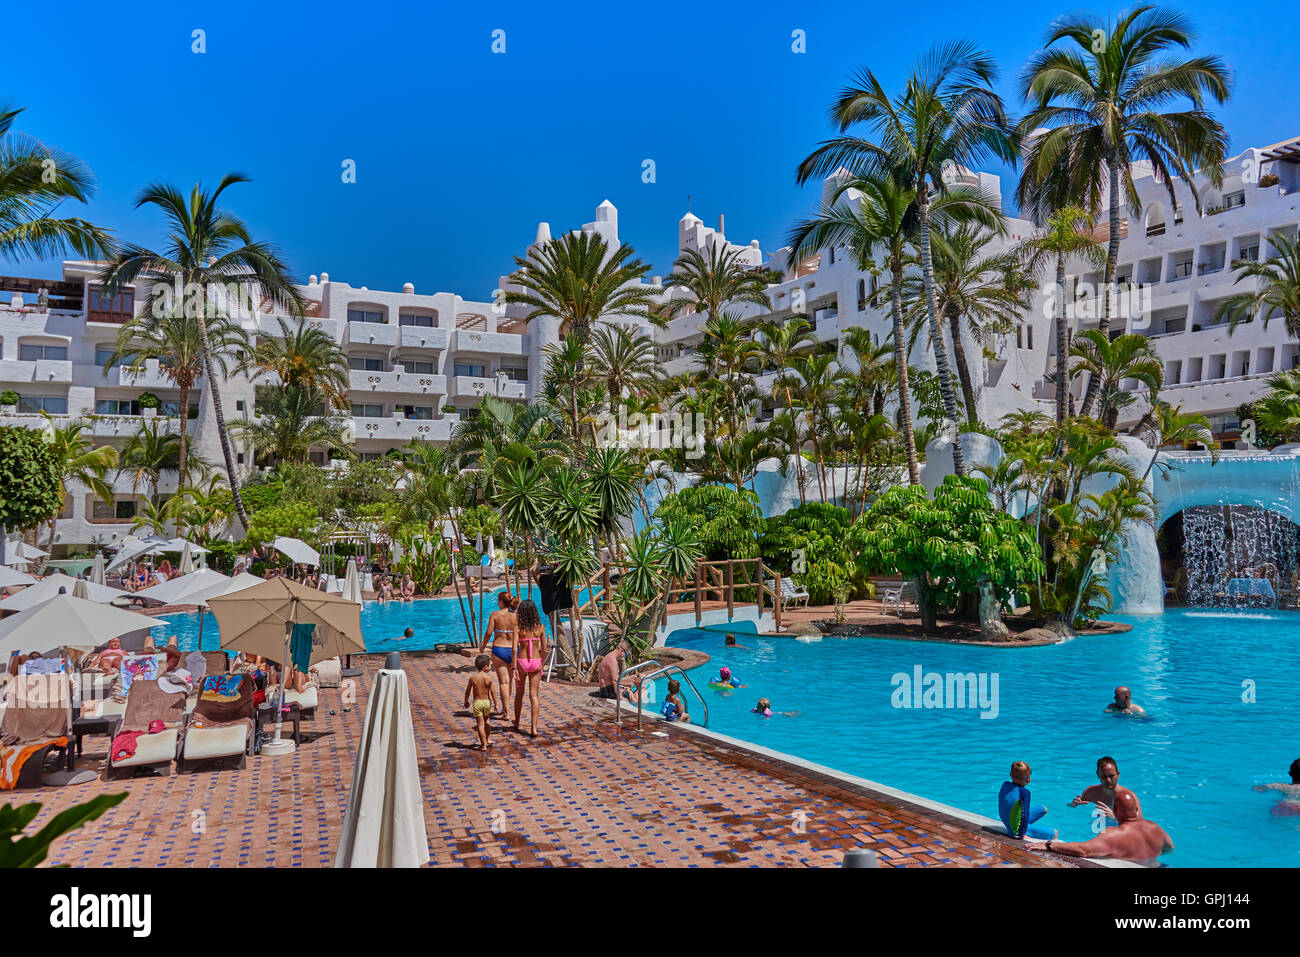 hotel jardin tropical costa adeje tenerife stock photo 117180676 alamy. Black Bedroom Furniture Sets. Home Design Ideas